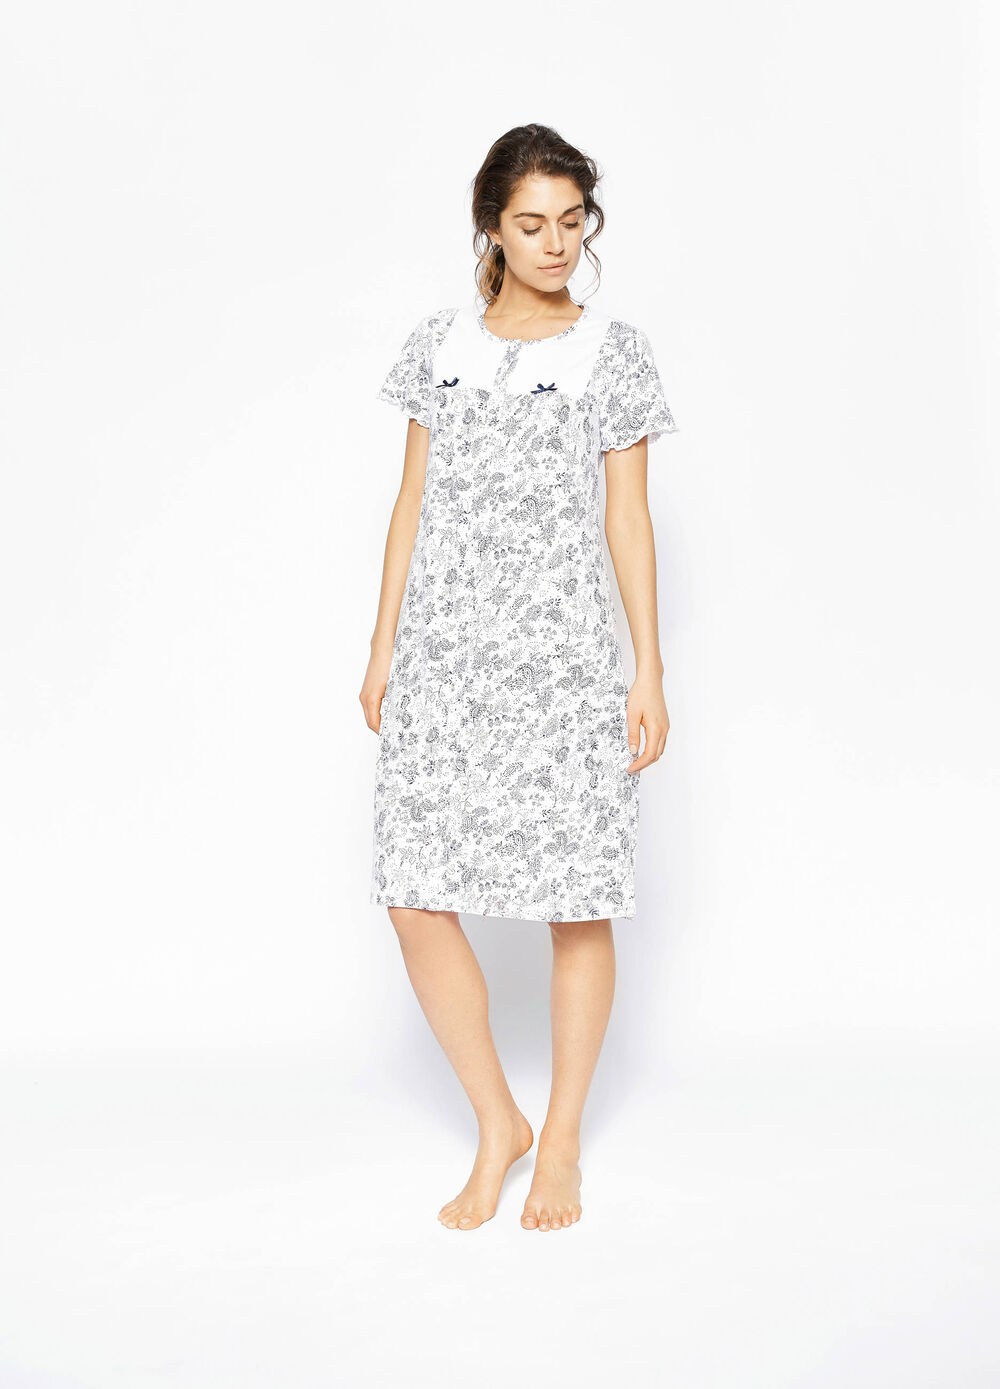 Short-sleeved nightshirt